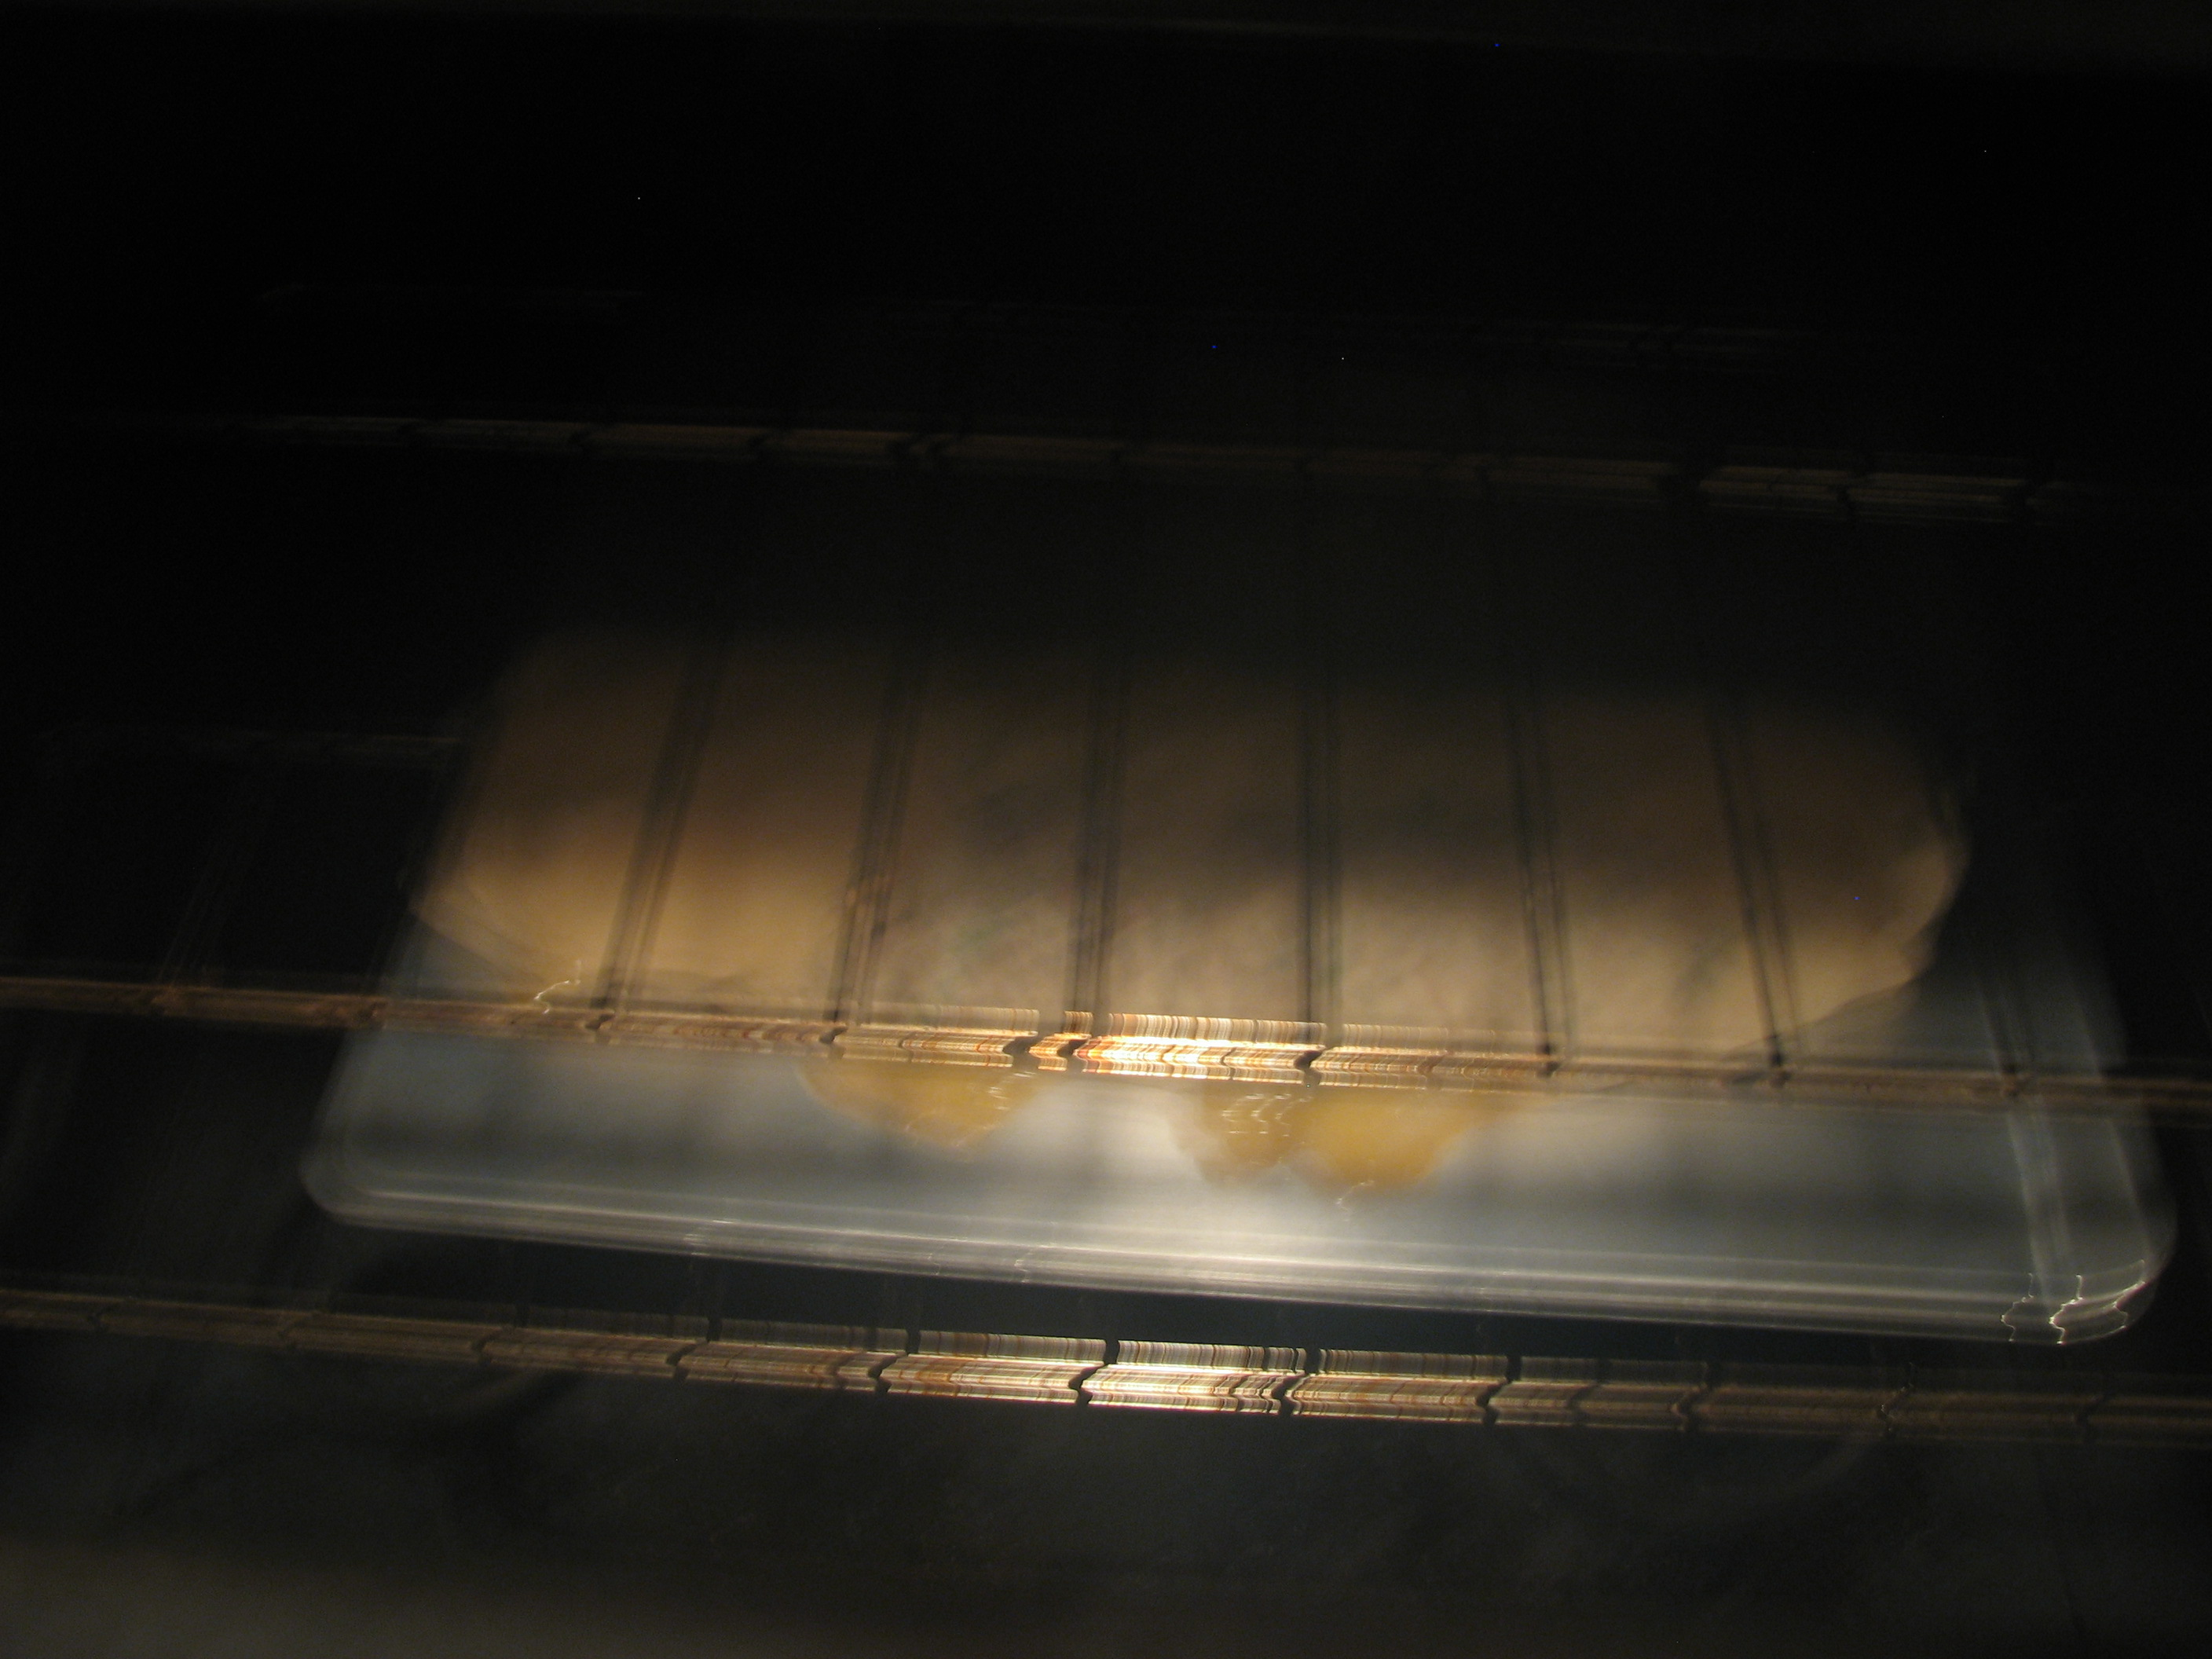 Savory strudel in the oven